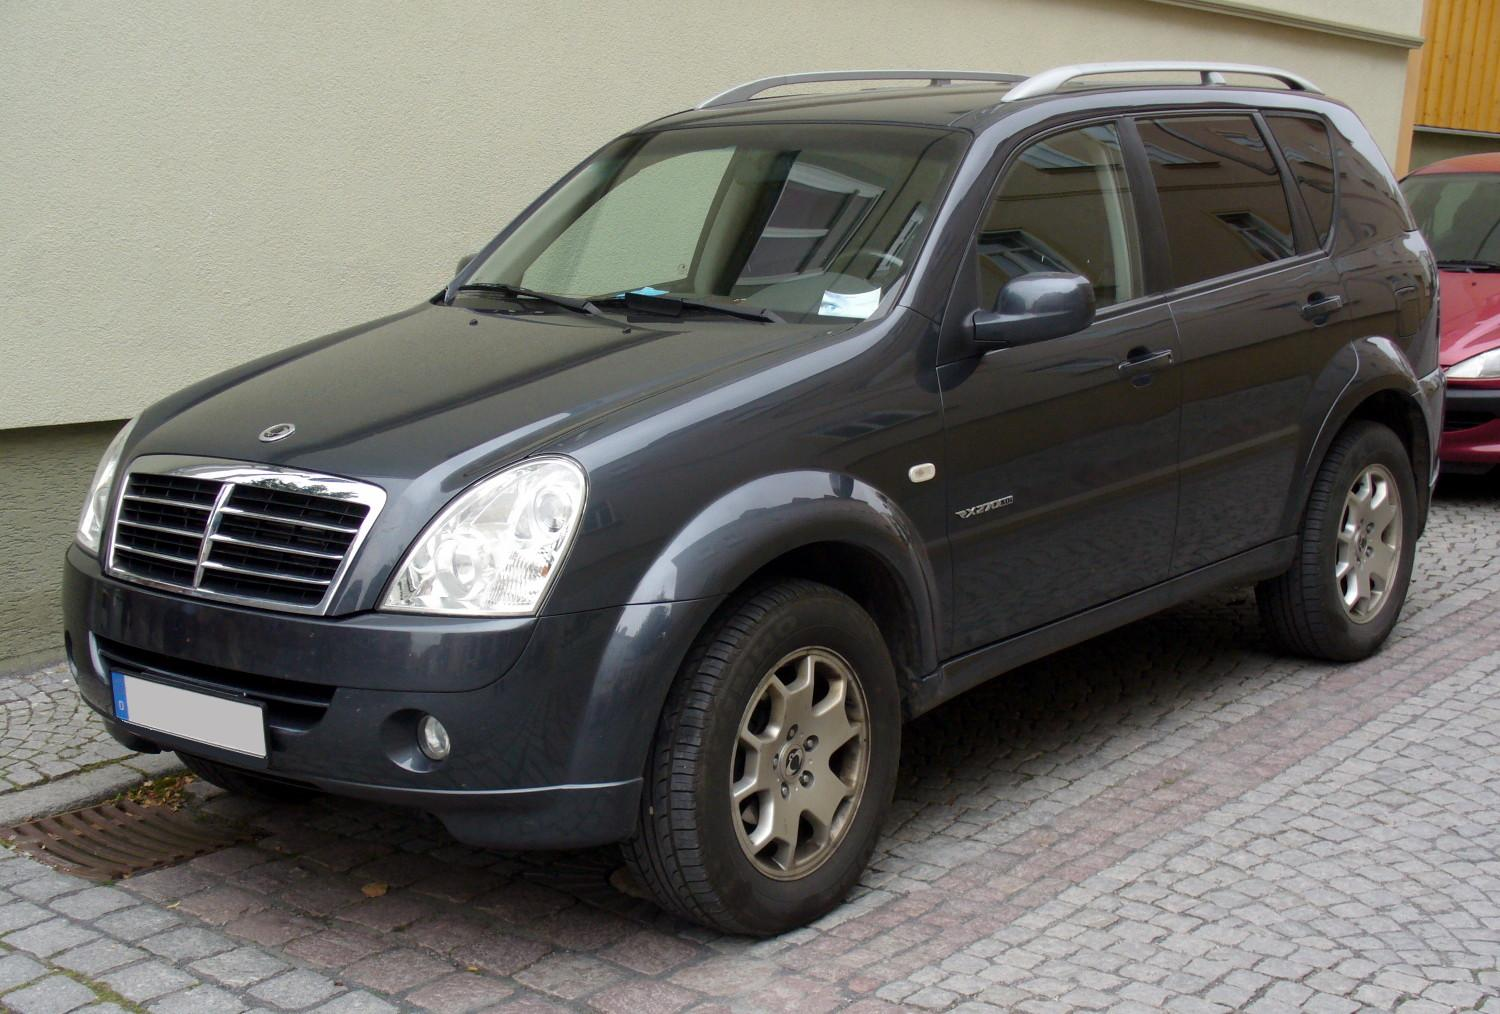 2006 Ssangyong Musso #5